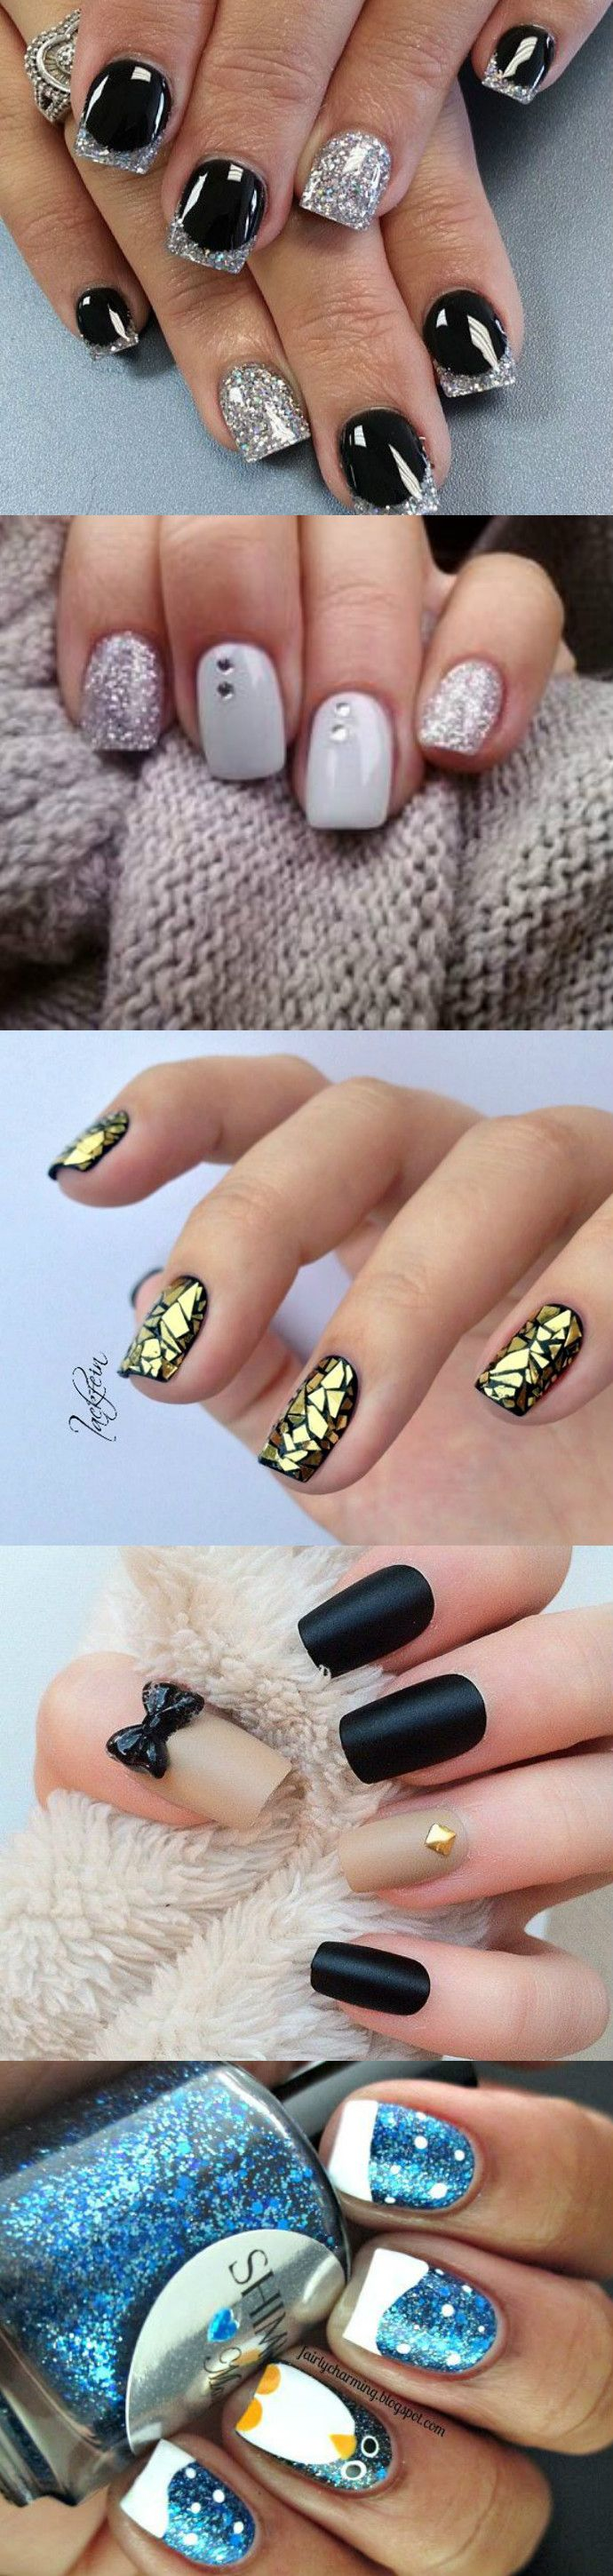 Top 100 Nail Art Ideas That You Will Love | 50th, Winter nails and ...